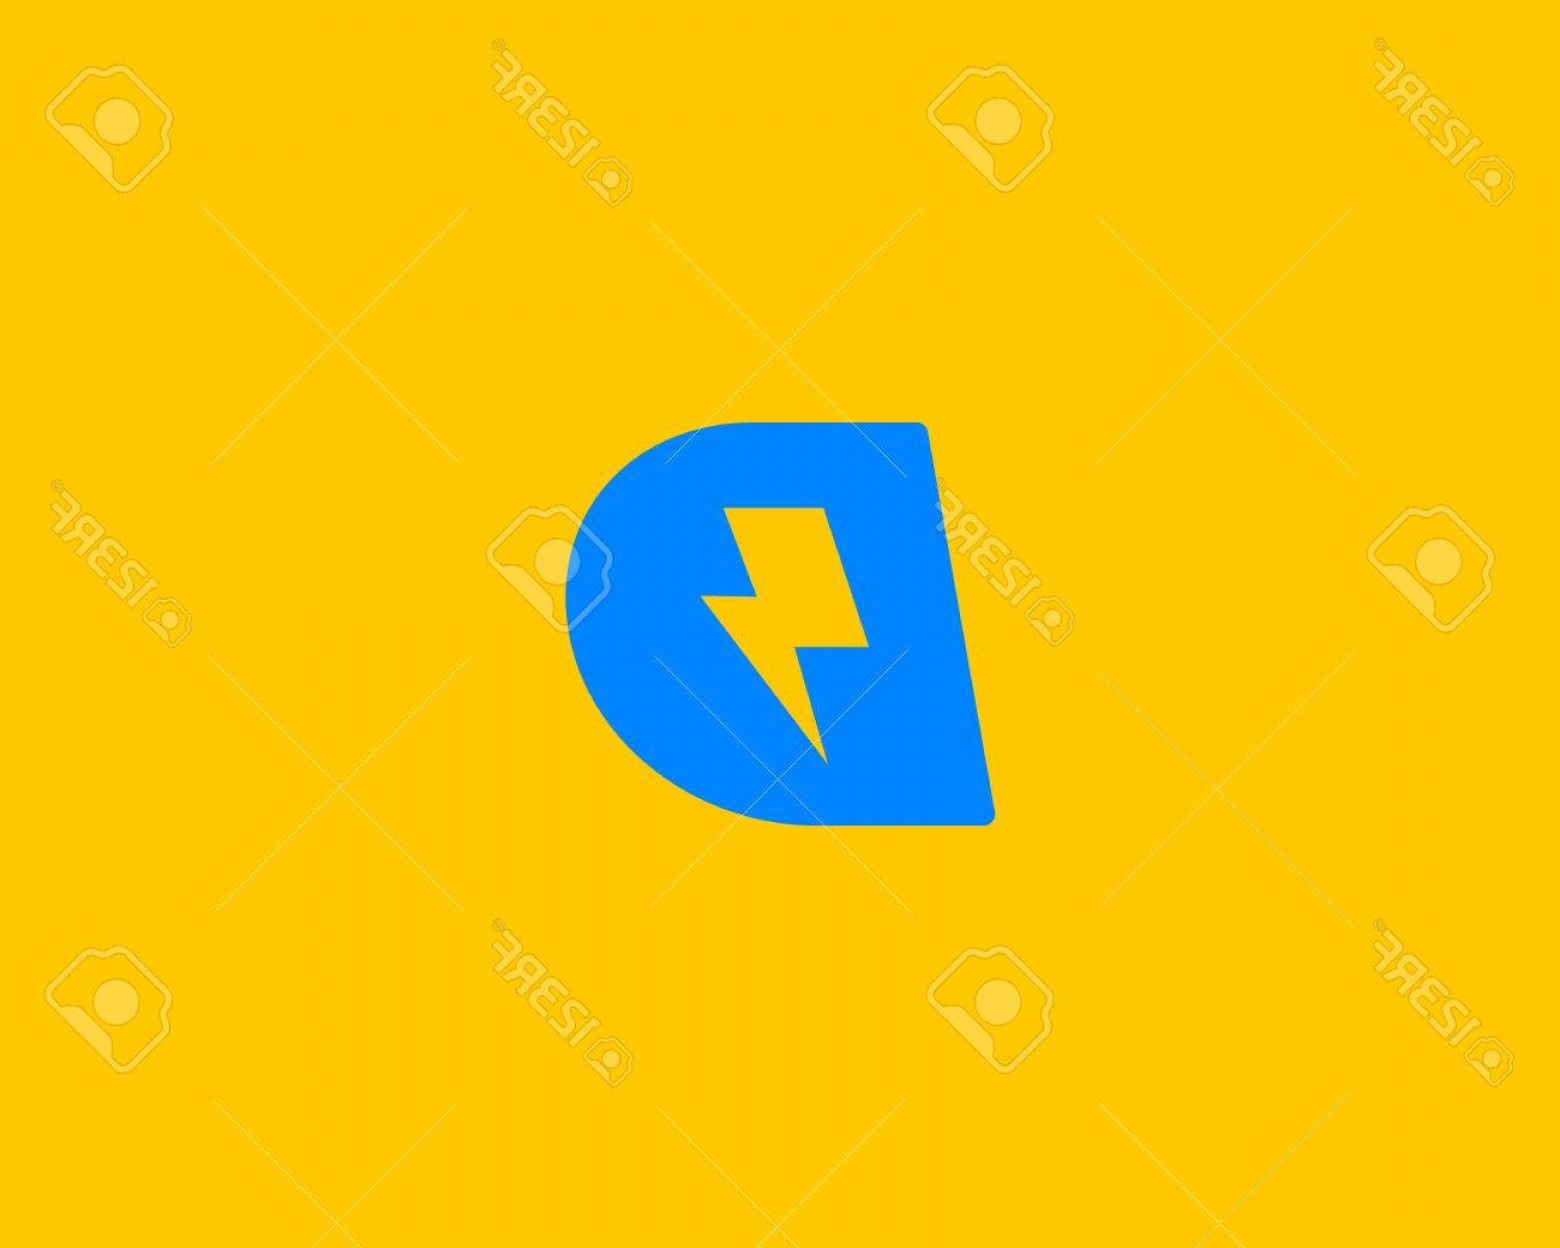 Flash Superhero Logo Vector: Photostock Vector Abstract Letter D Icon Dynamic Unusual Font Universal Fast Speed Fire Moving Quick Energy Icon Flash